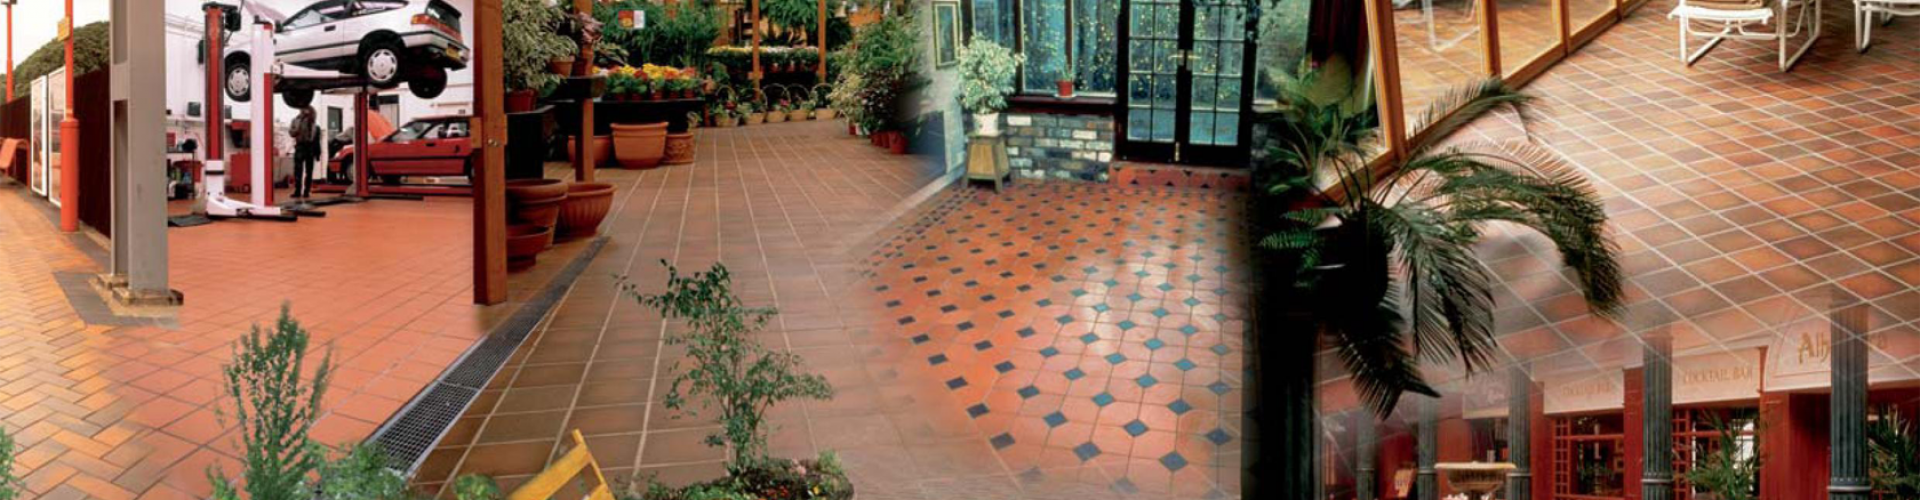 Dennis Ruabon Tiles Over 125 years of craftsmanship